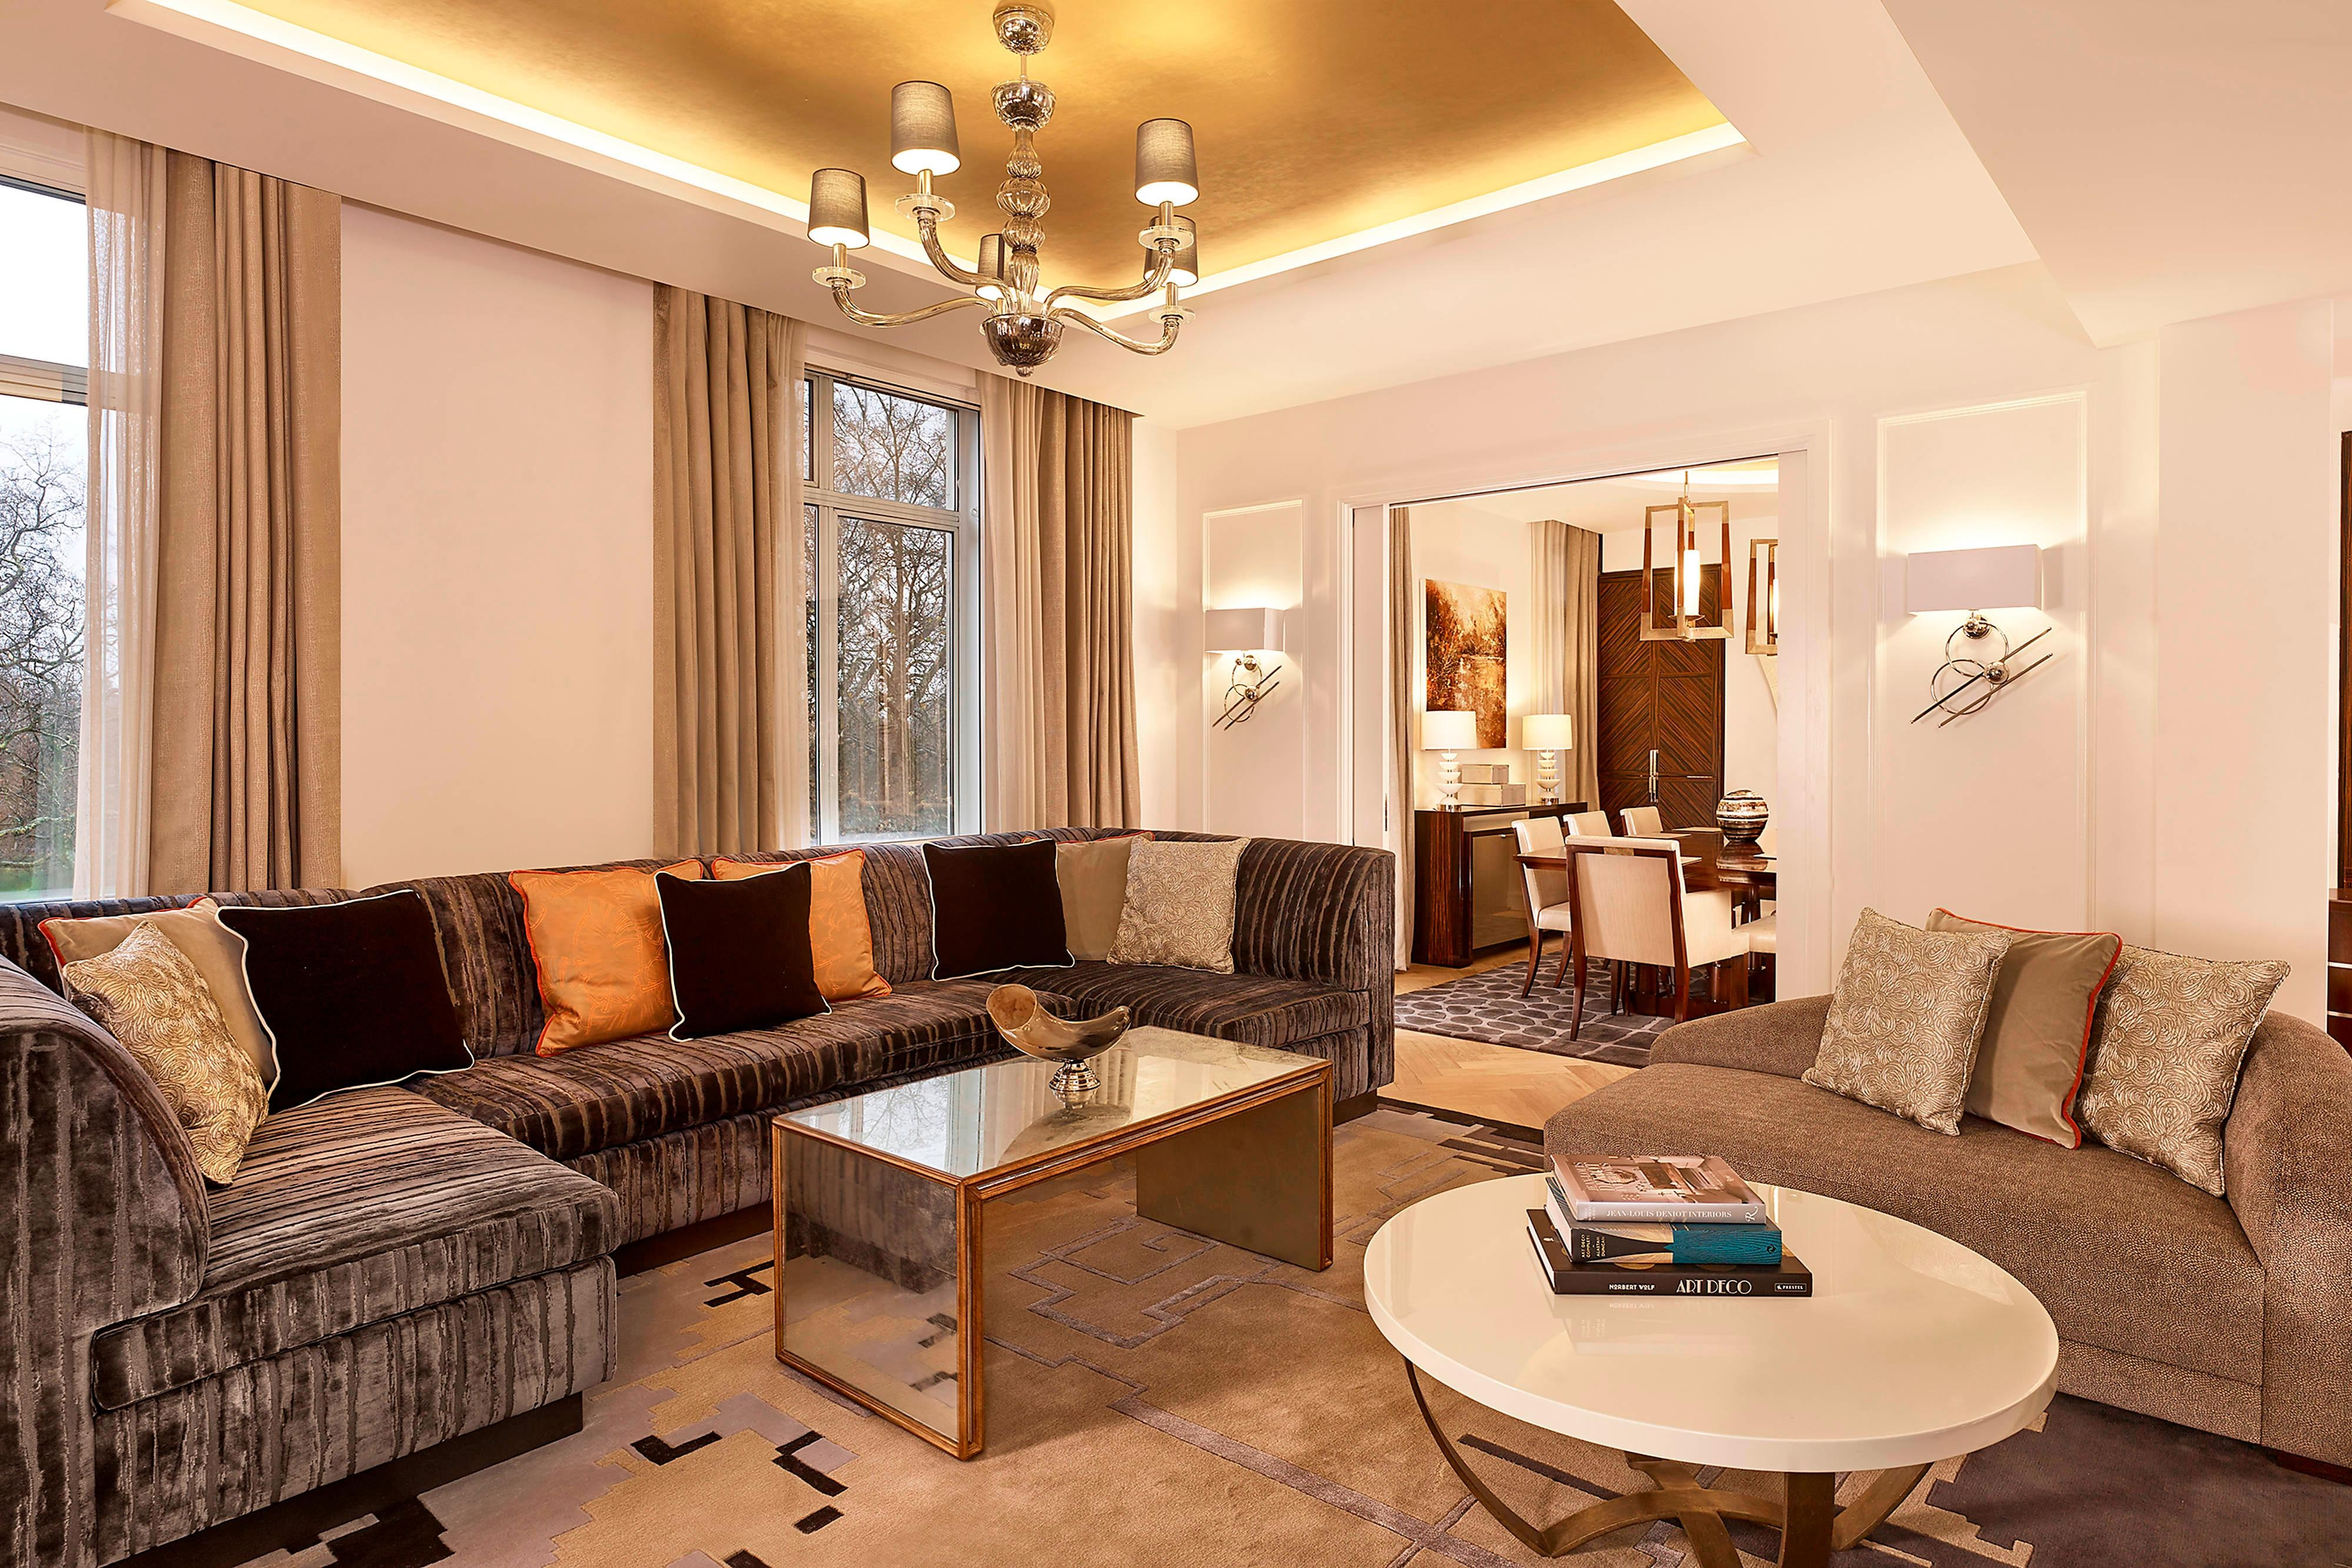 The Grand Suite - Living Room and Dining Room